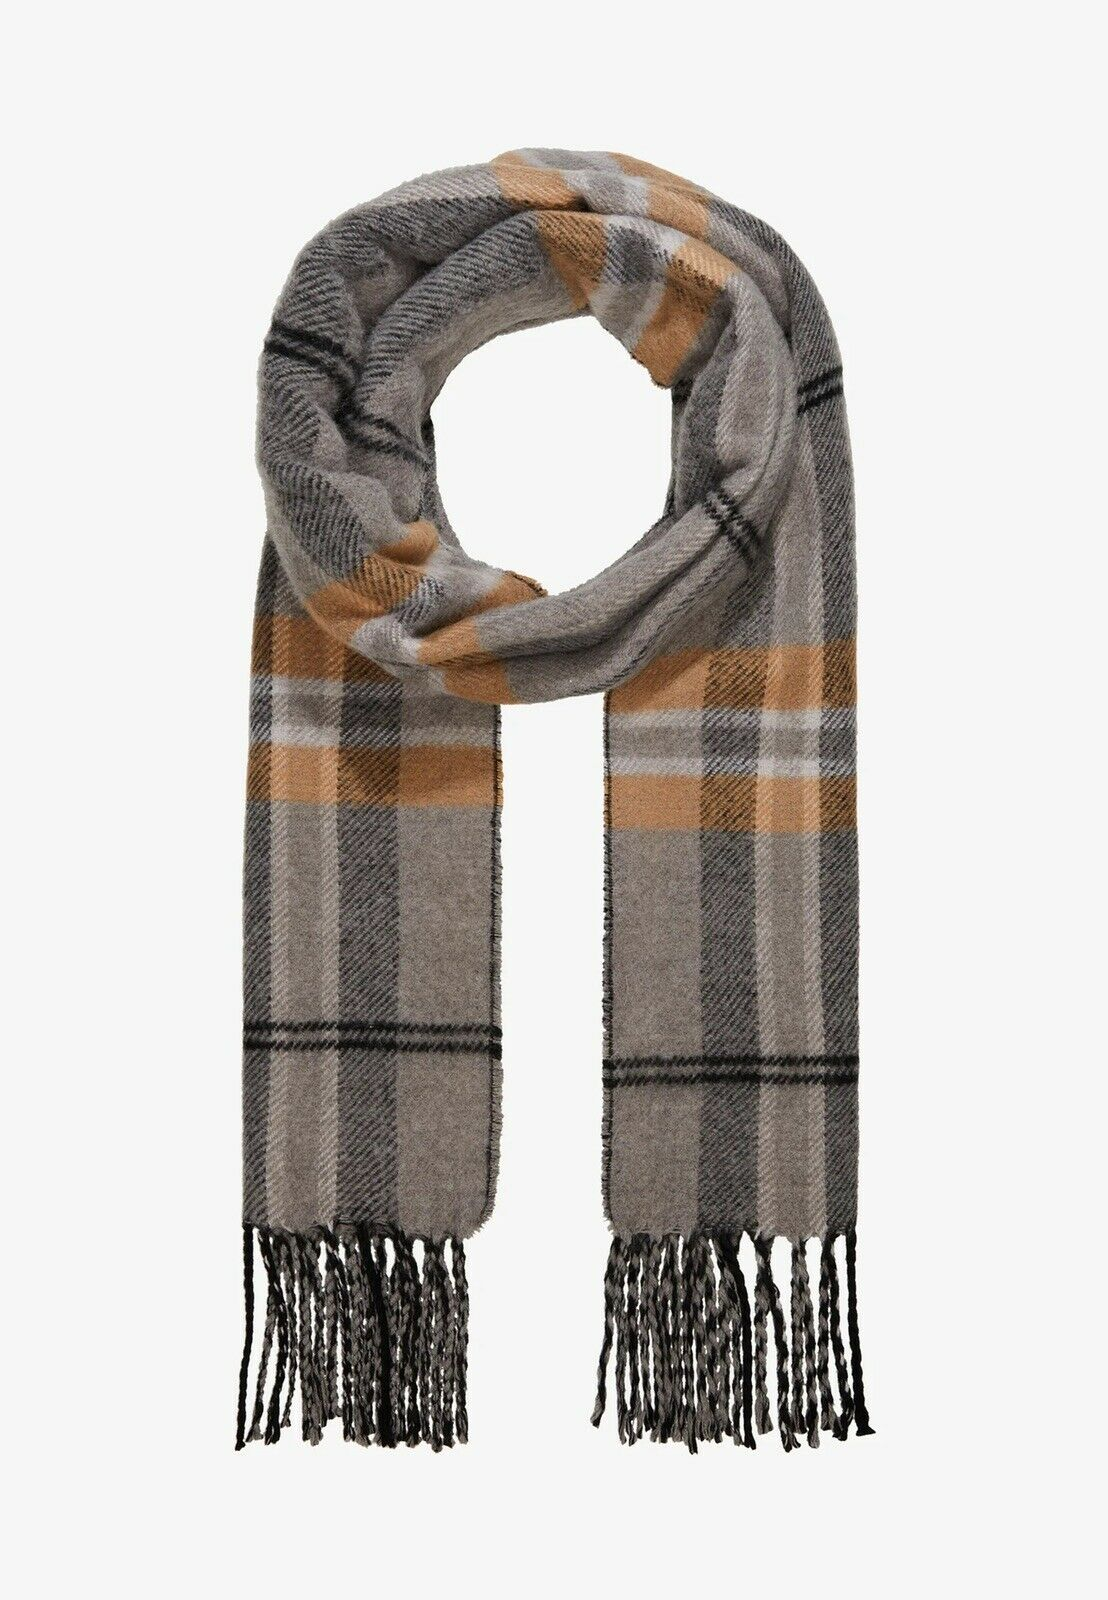 ALDO COHAN - Men's Scarf - Grey - Brand New With Tags